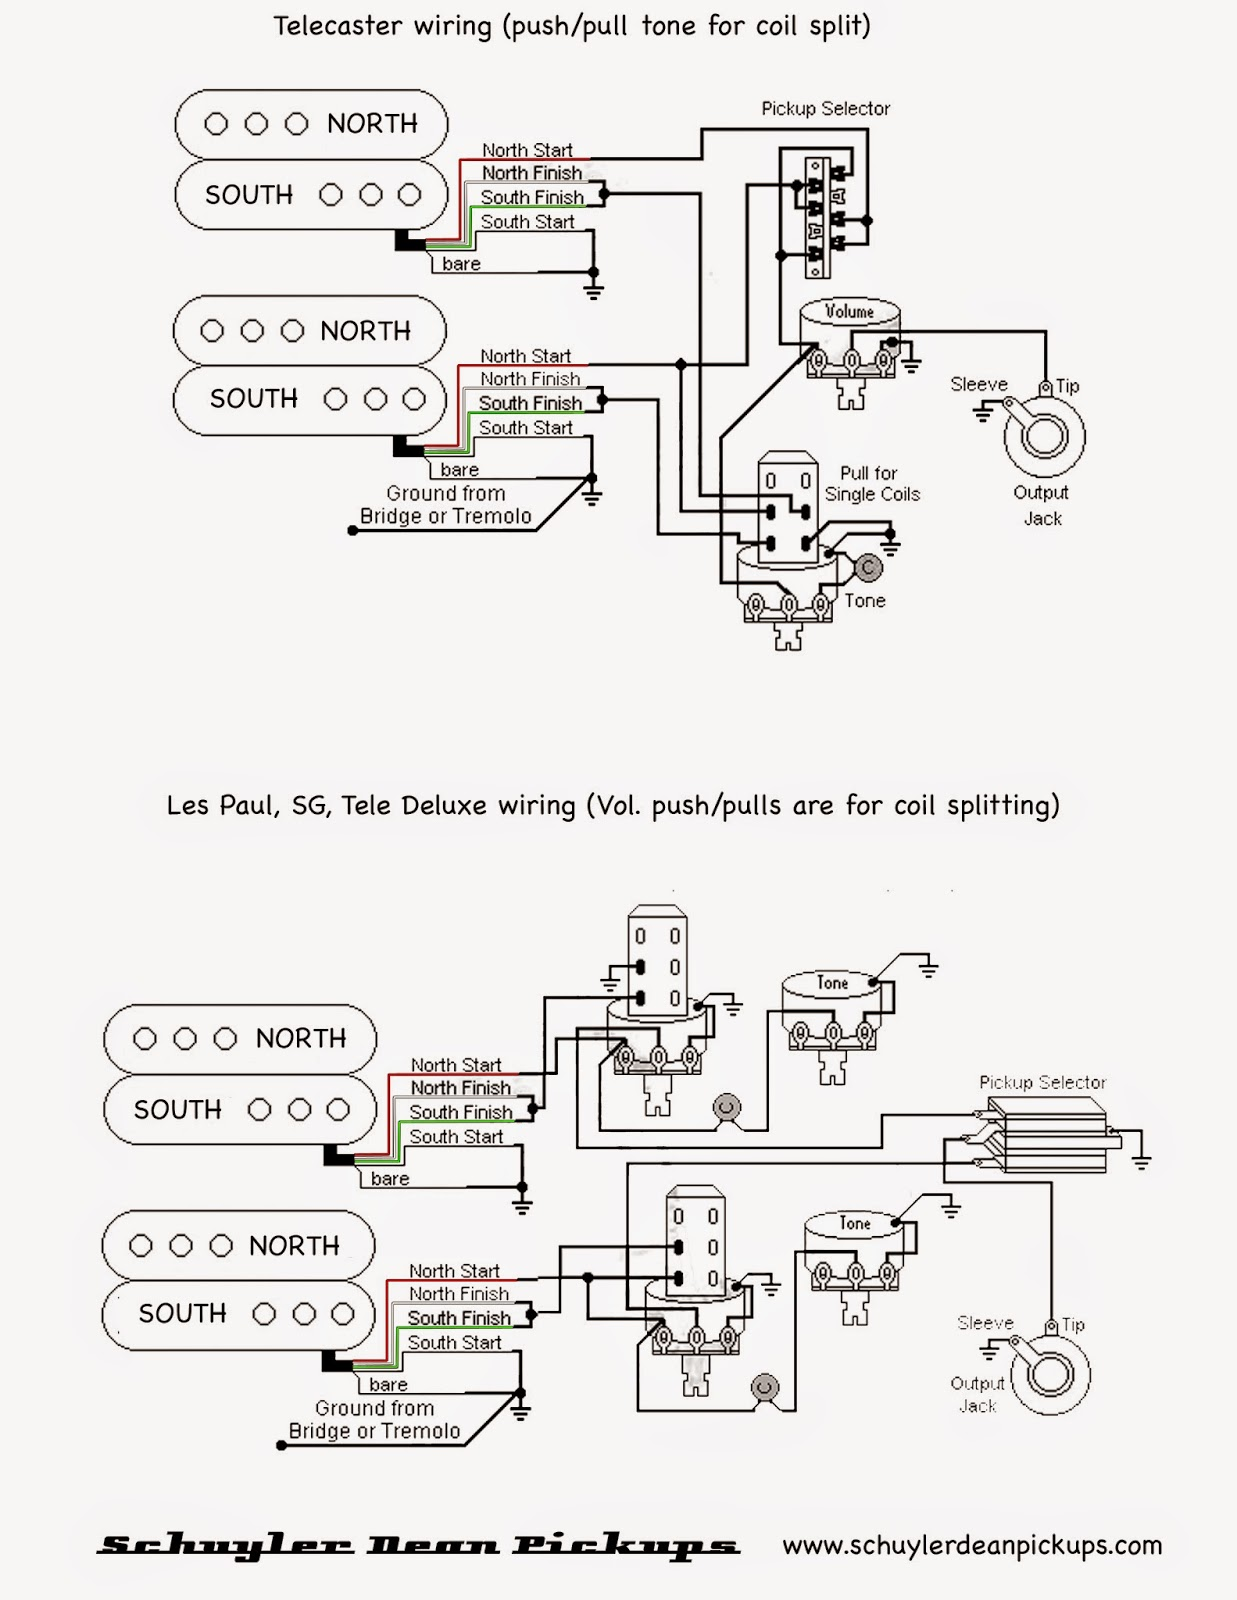 Wiring%2Bdiagram%2BTele LP schuyler dean pickups 2014 Single Coil Pickup Wiring Diagrams at edmiracle.co